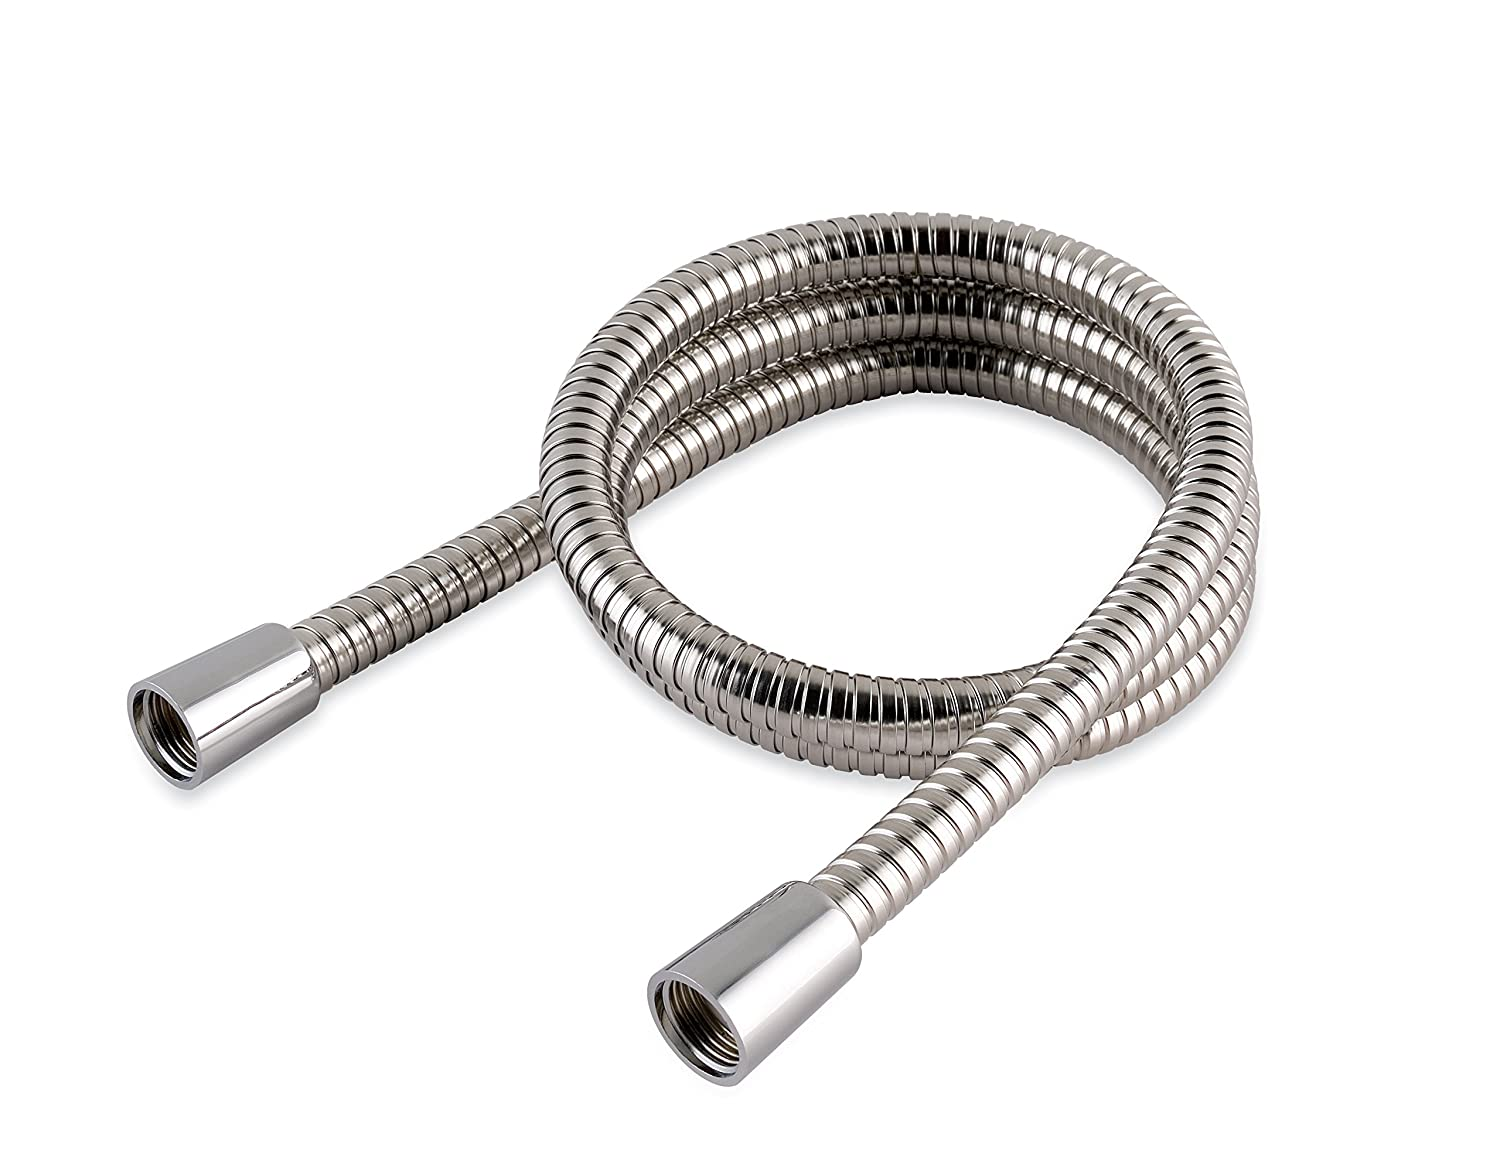 MX Group 1.0 m Stainless Steel Hi Flow Double Interlock Shower Hose HAA